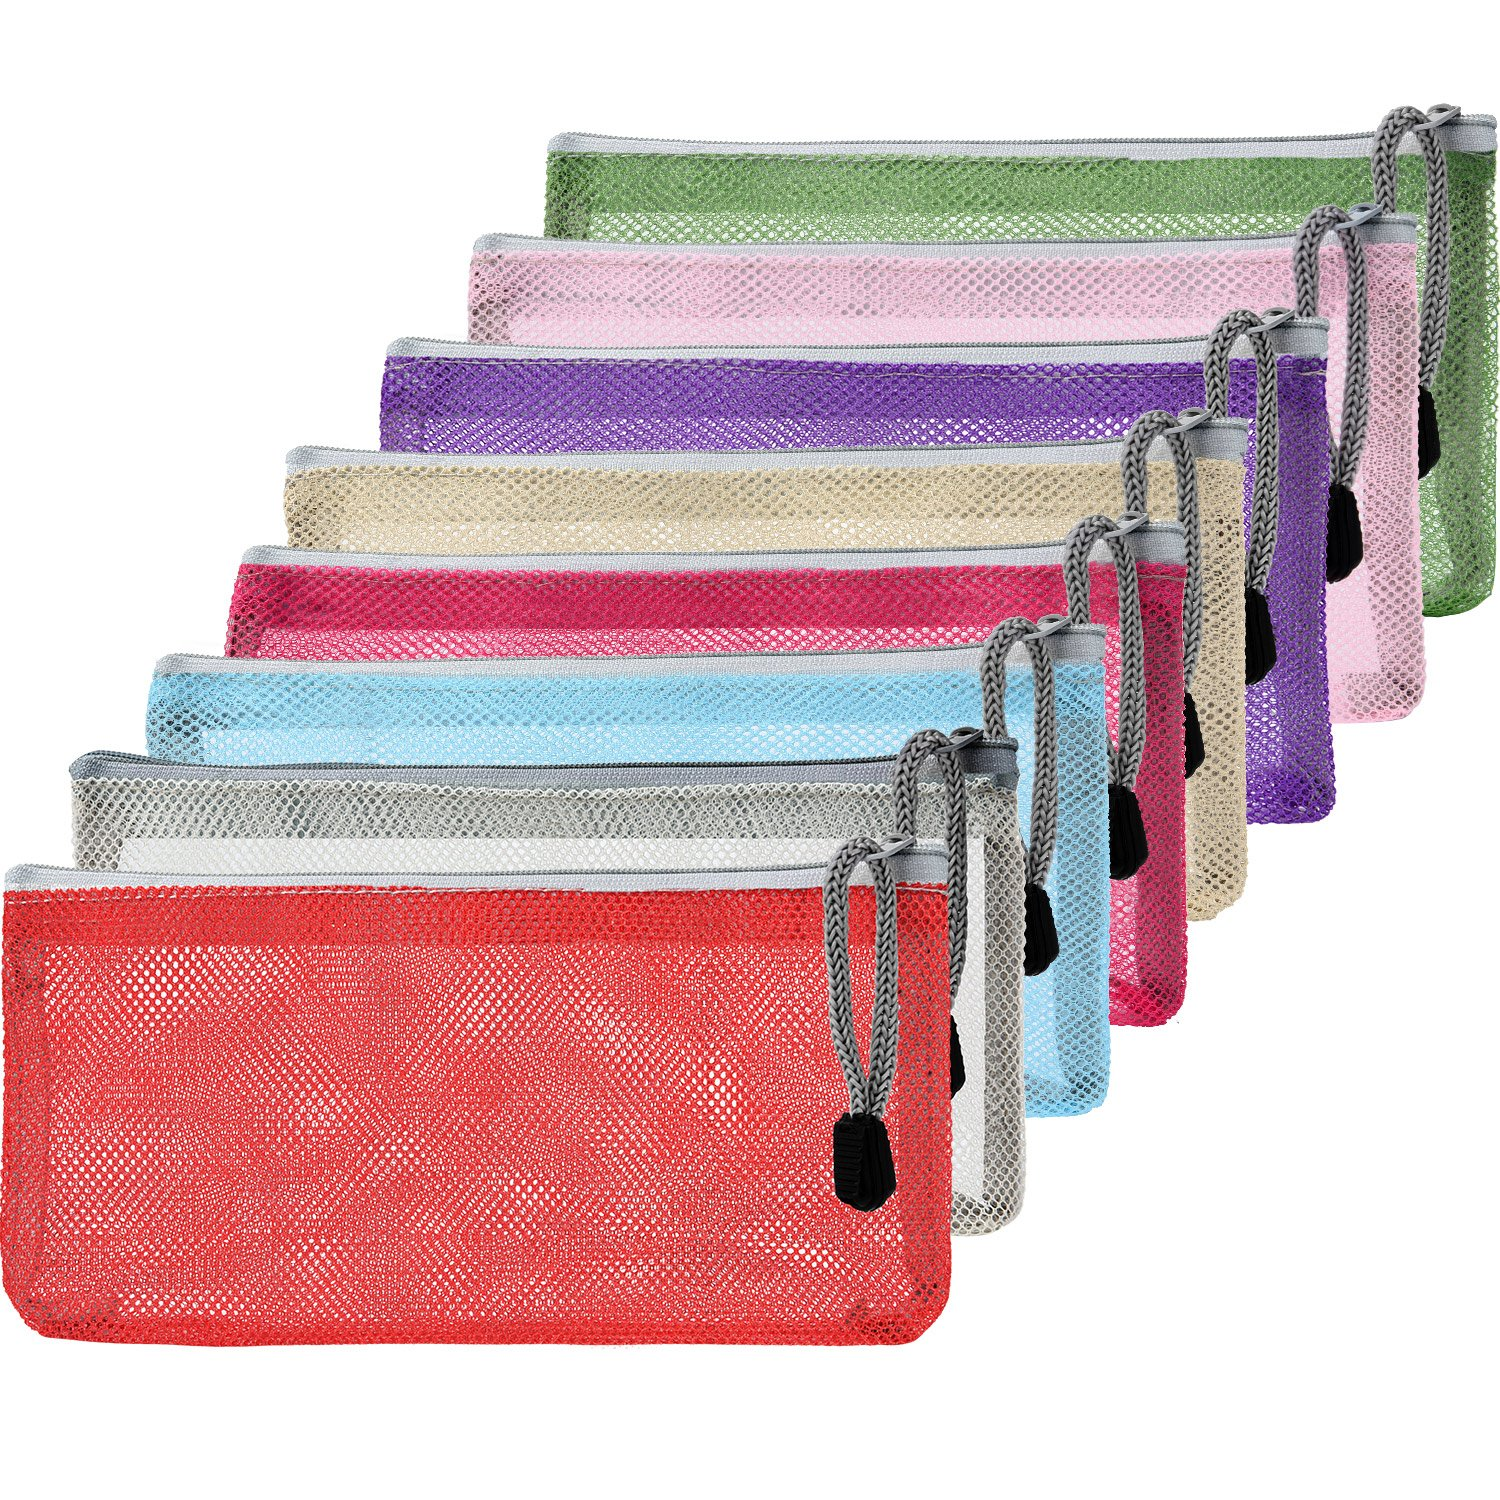 8 Pieces Zipper Mesh Carry Bag Mesh Makeup Bag Mesh Compact Travel Pouch Organizer for Toiletry and Cosmetics, 8 Colors